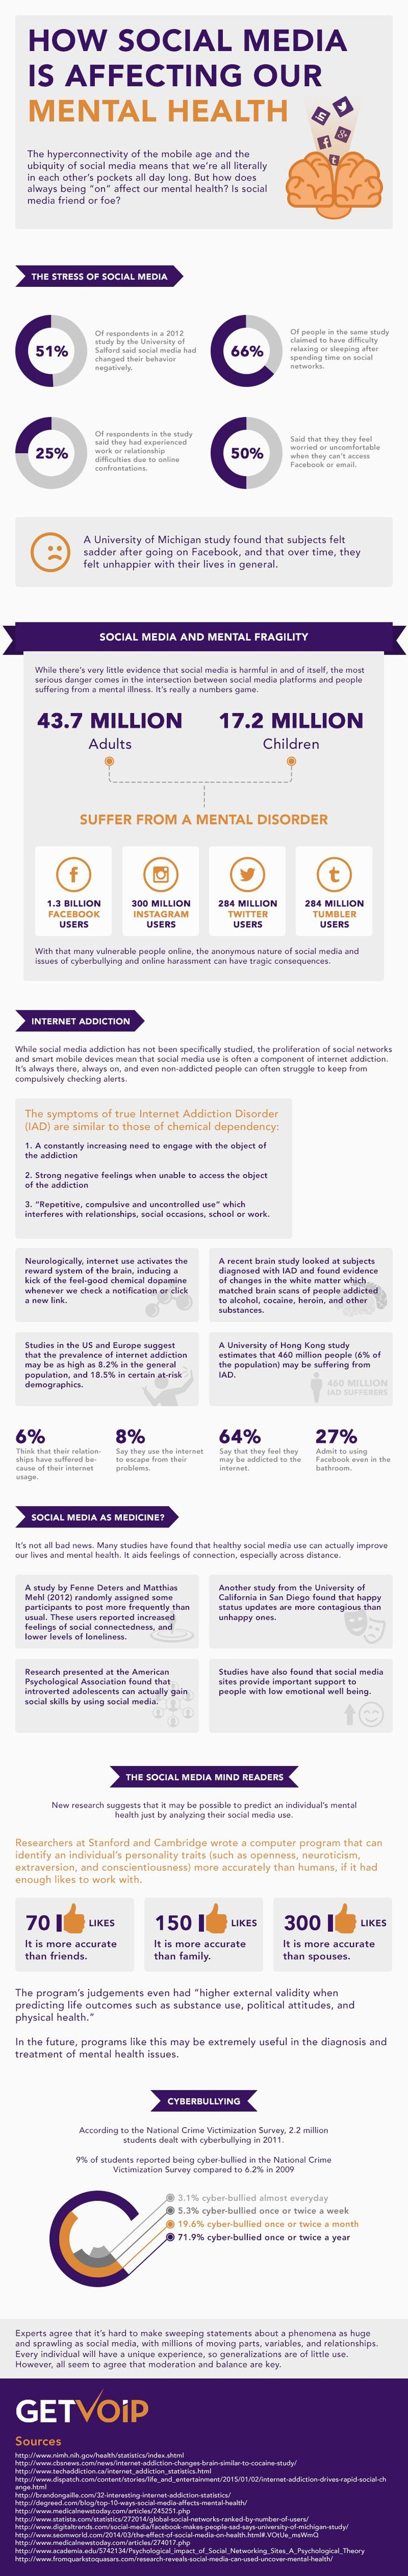 How #SocialMedia is Affecting Our Mental Health - #Infographic